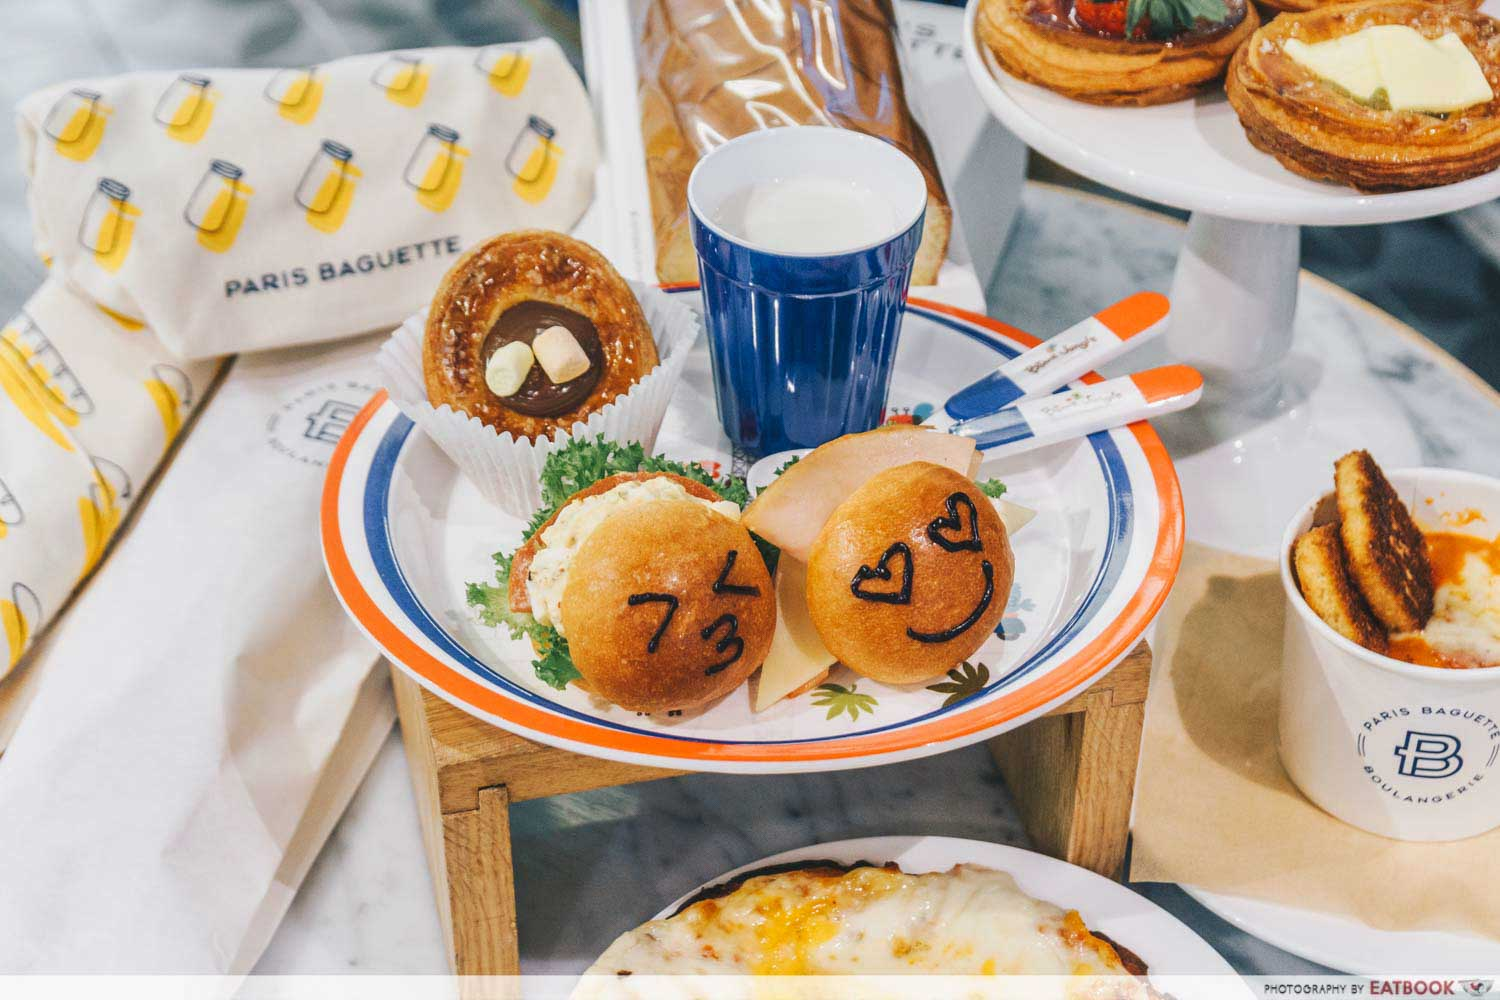 Paris Baguette Northpoint - mini burgers